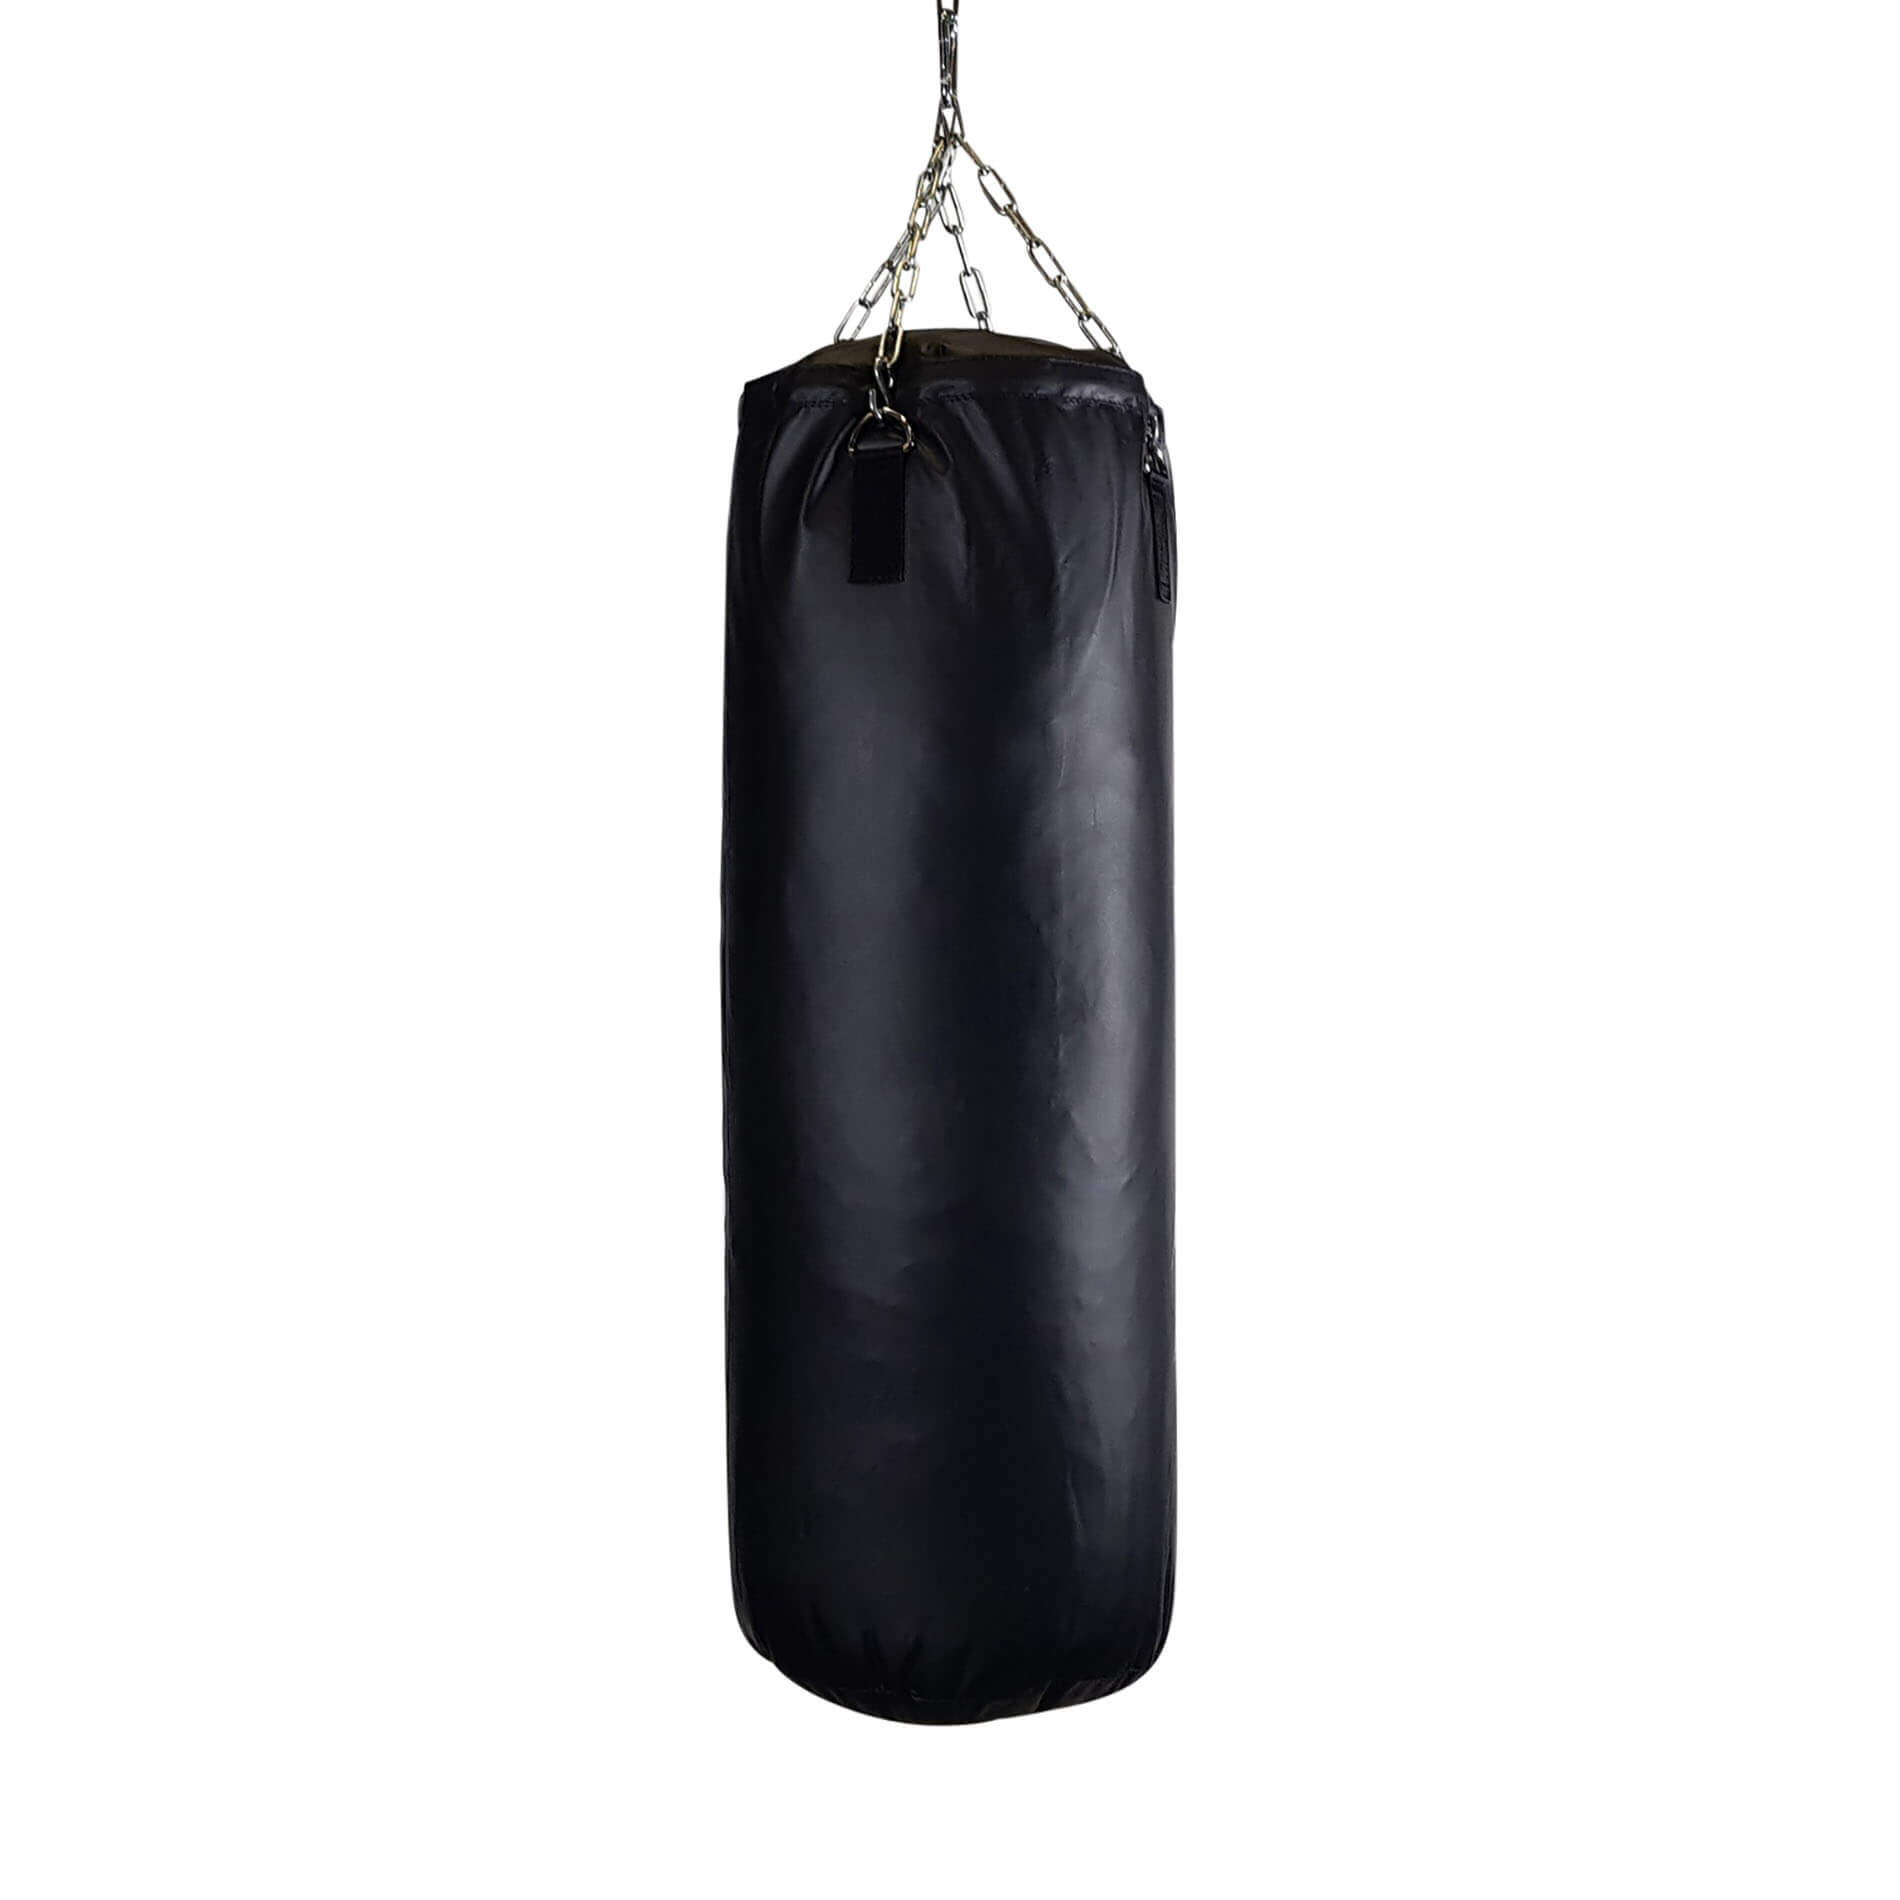 Boxing Bag Filled with Chain